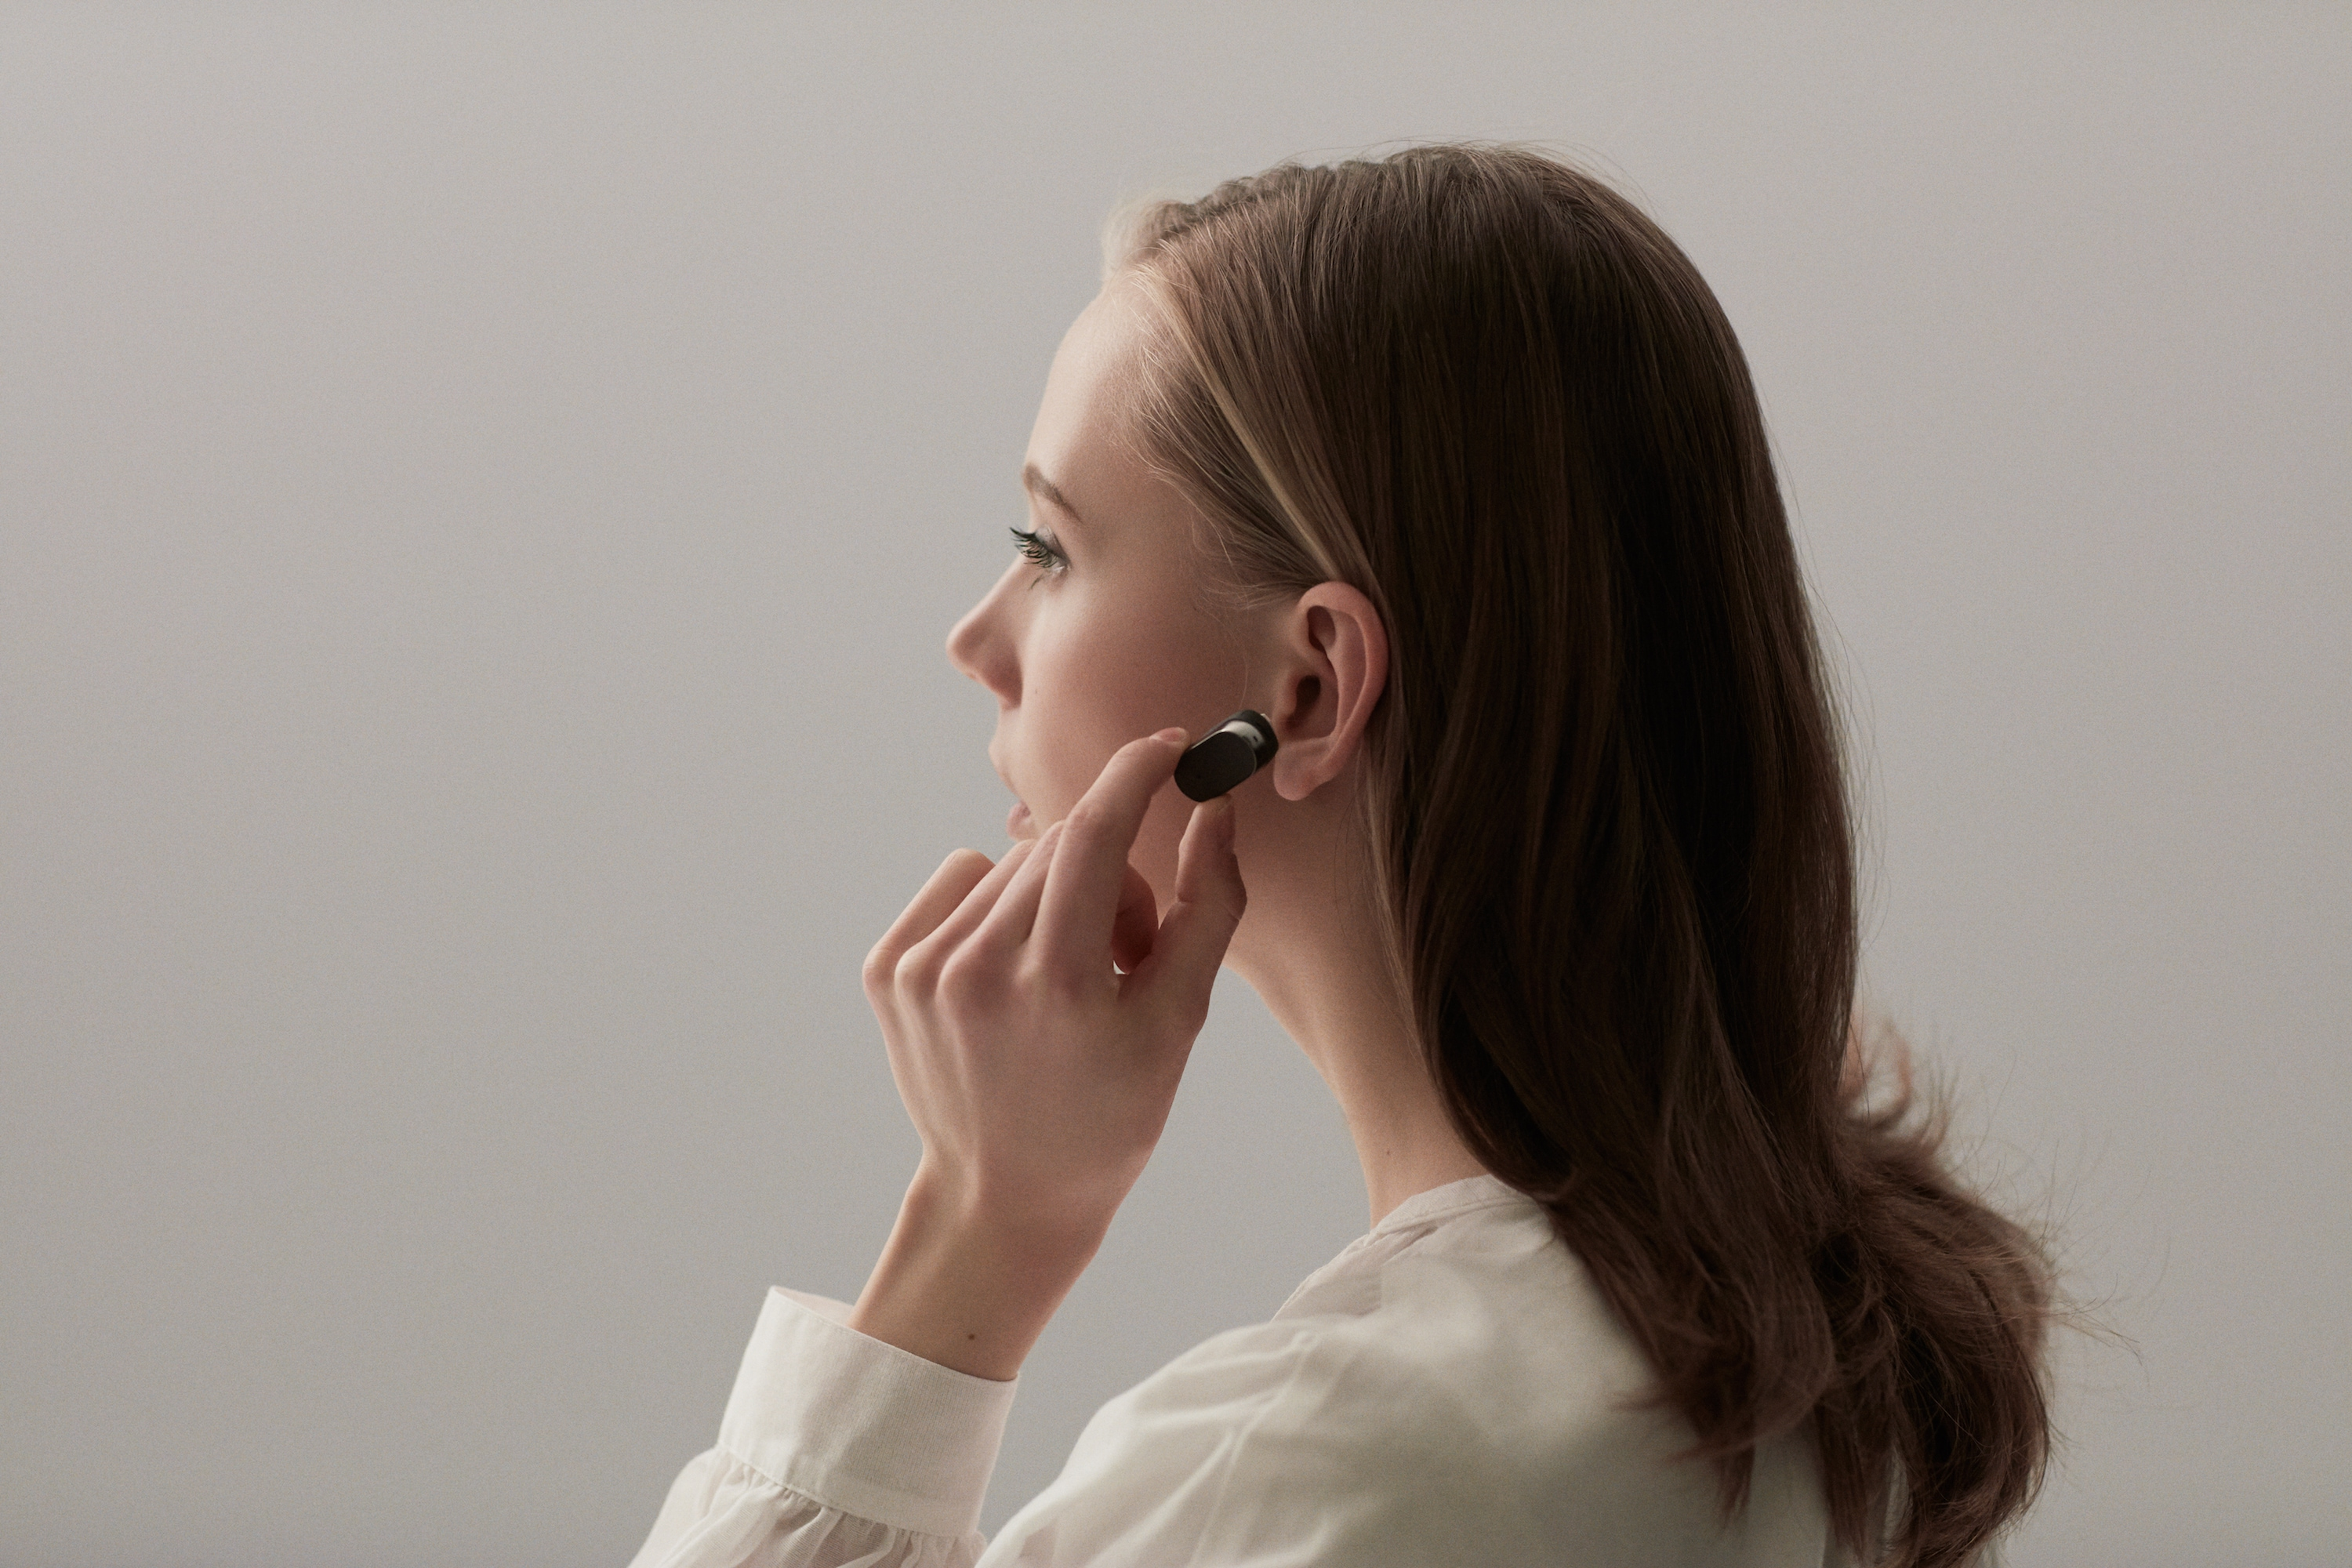 Xperia Ear arriva ufficialmente in Europa: preordini aperti a 199€ (foto e video)